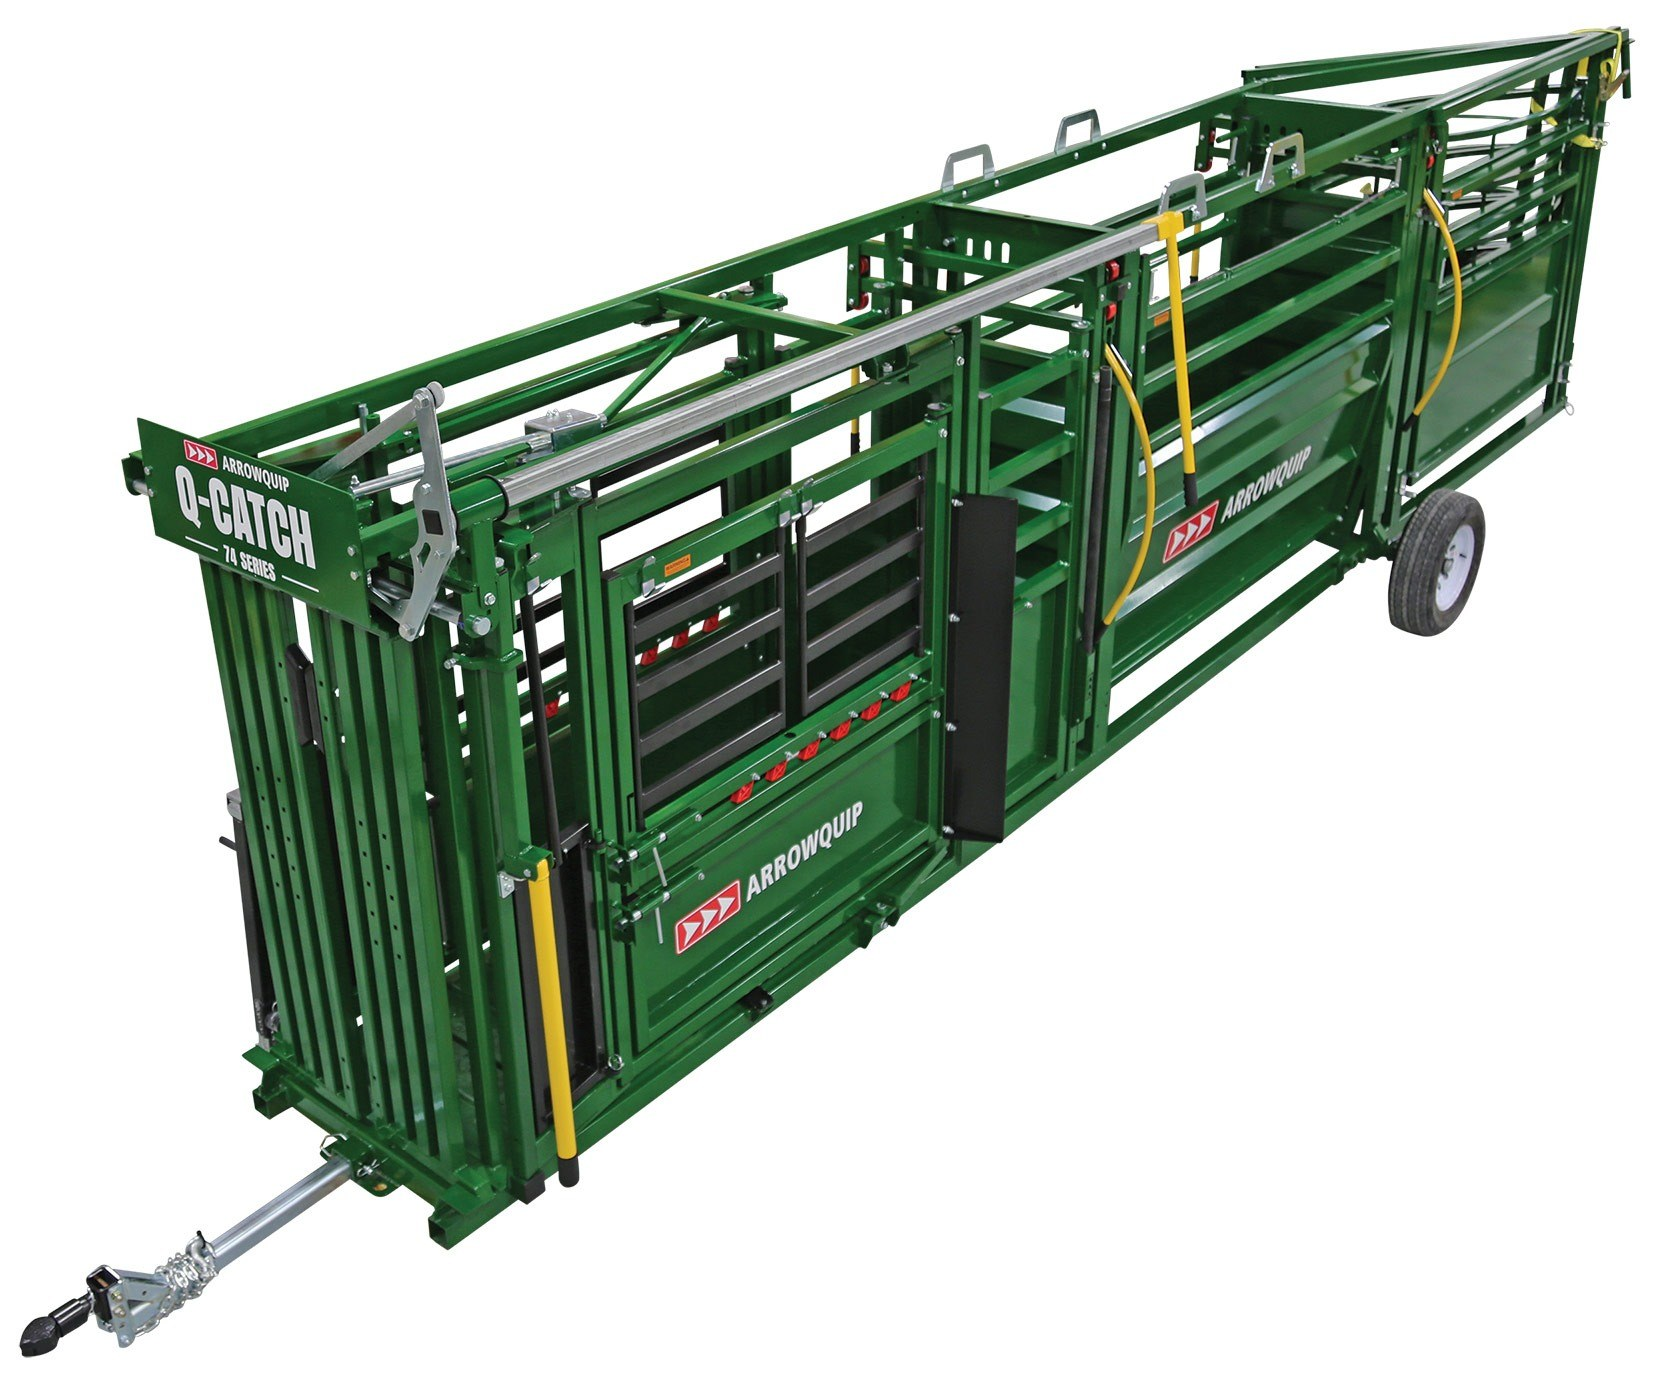 Q-Catch 74 Series Squeeze Chute, 8' Alley and Tub